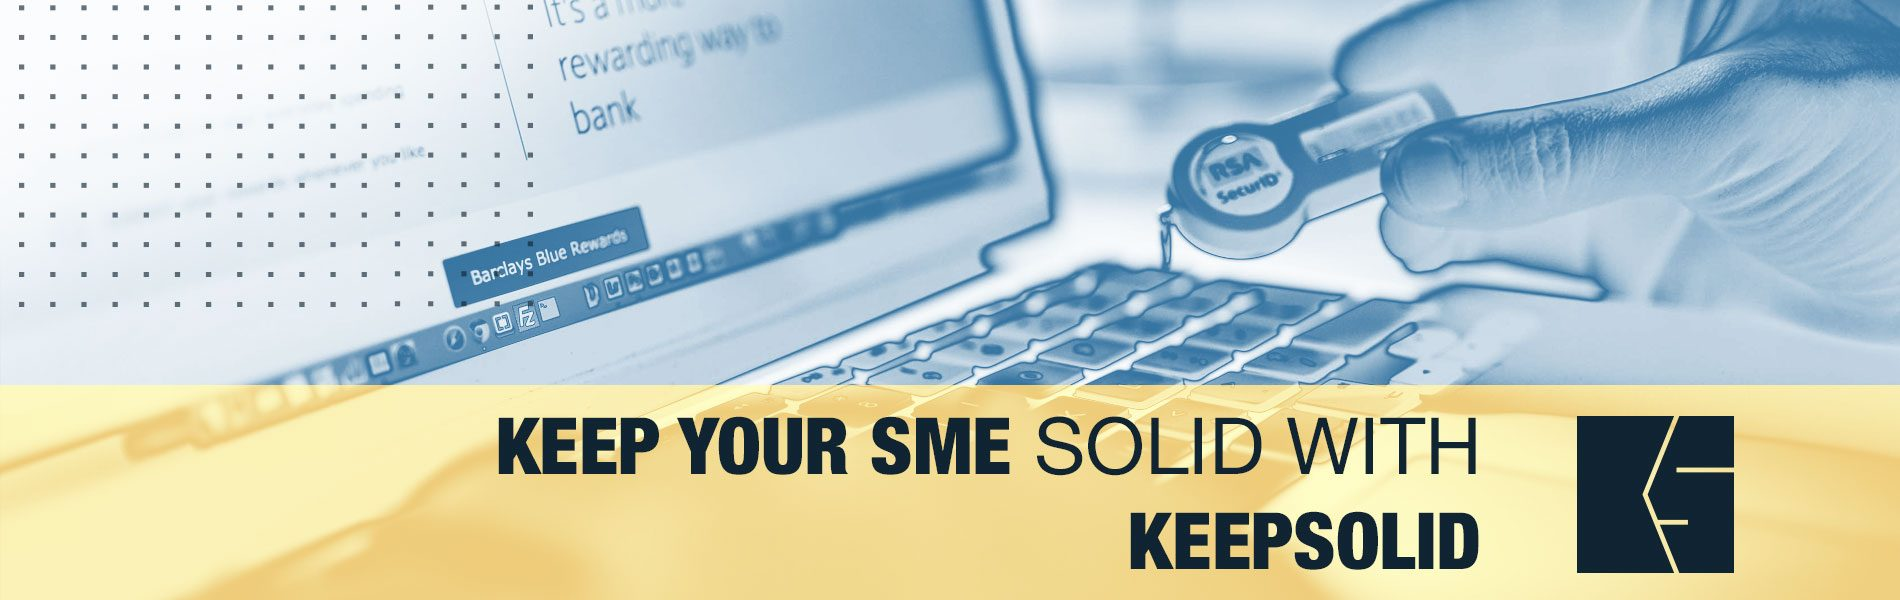 4 Easy & Practical Steps for SME Online Security